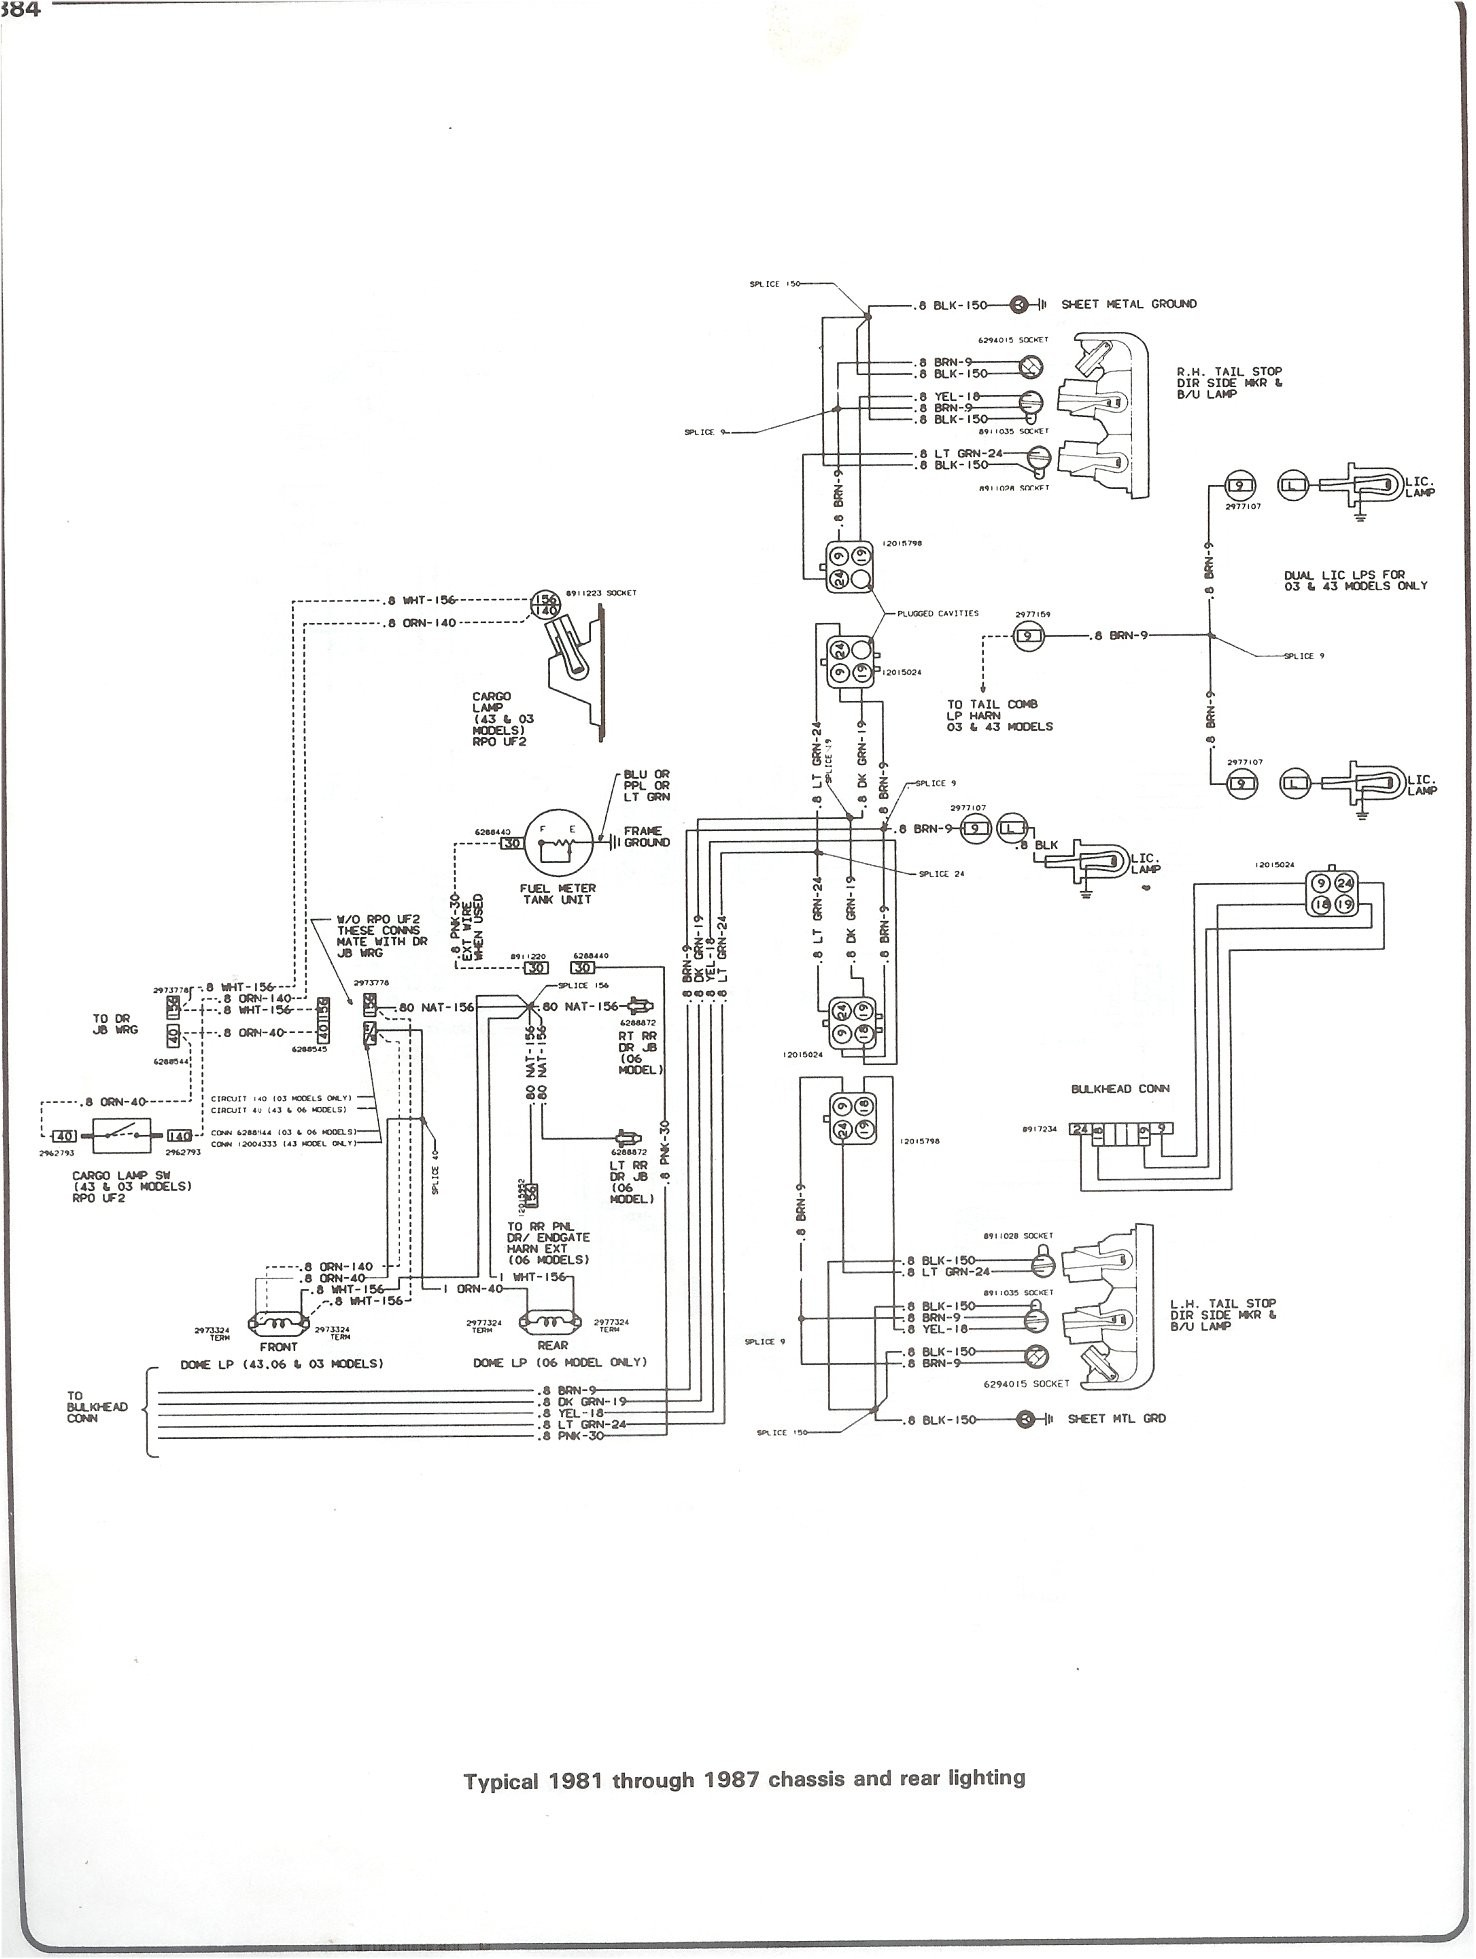 fuse box mitsubishi lancer sportback 2010 wiring diagram. Black Bedroom Furniture Sets. Home Design Ideas